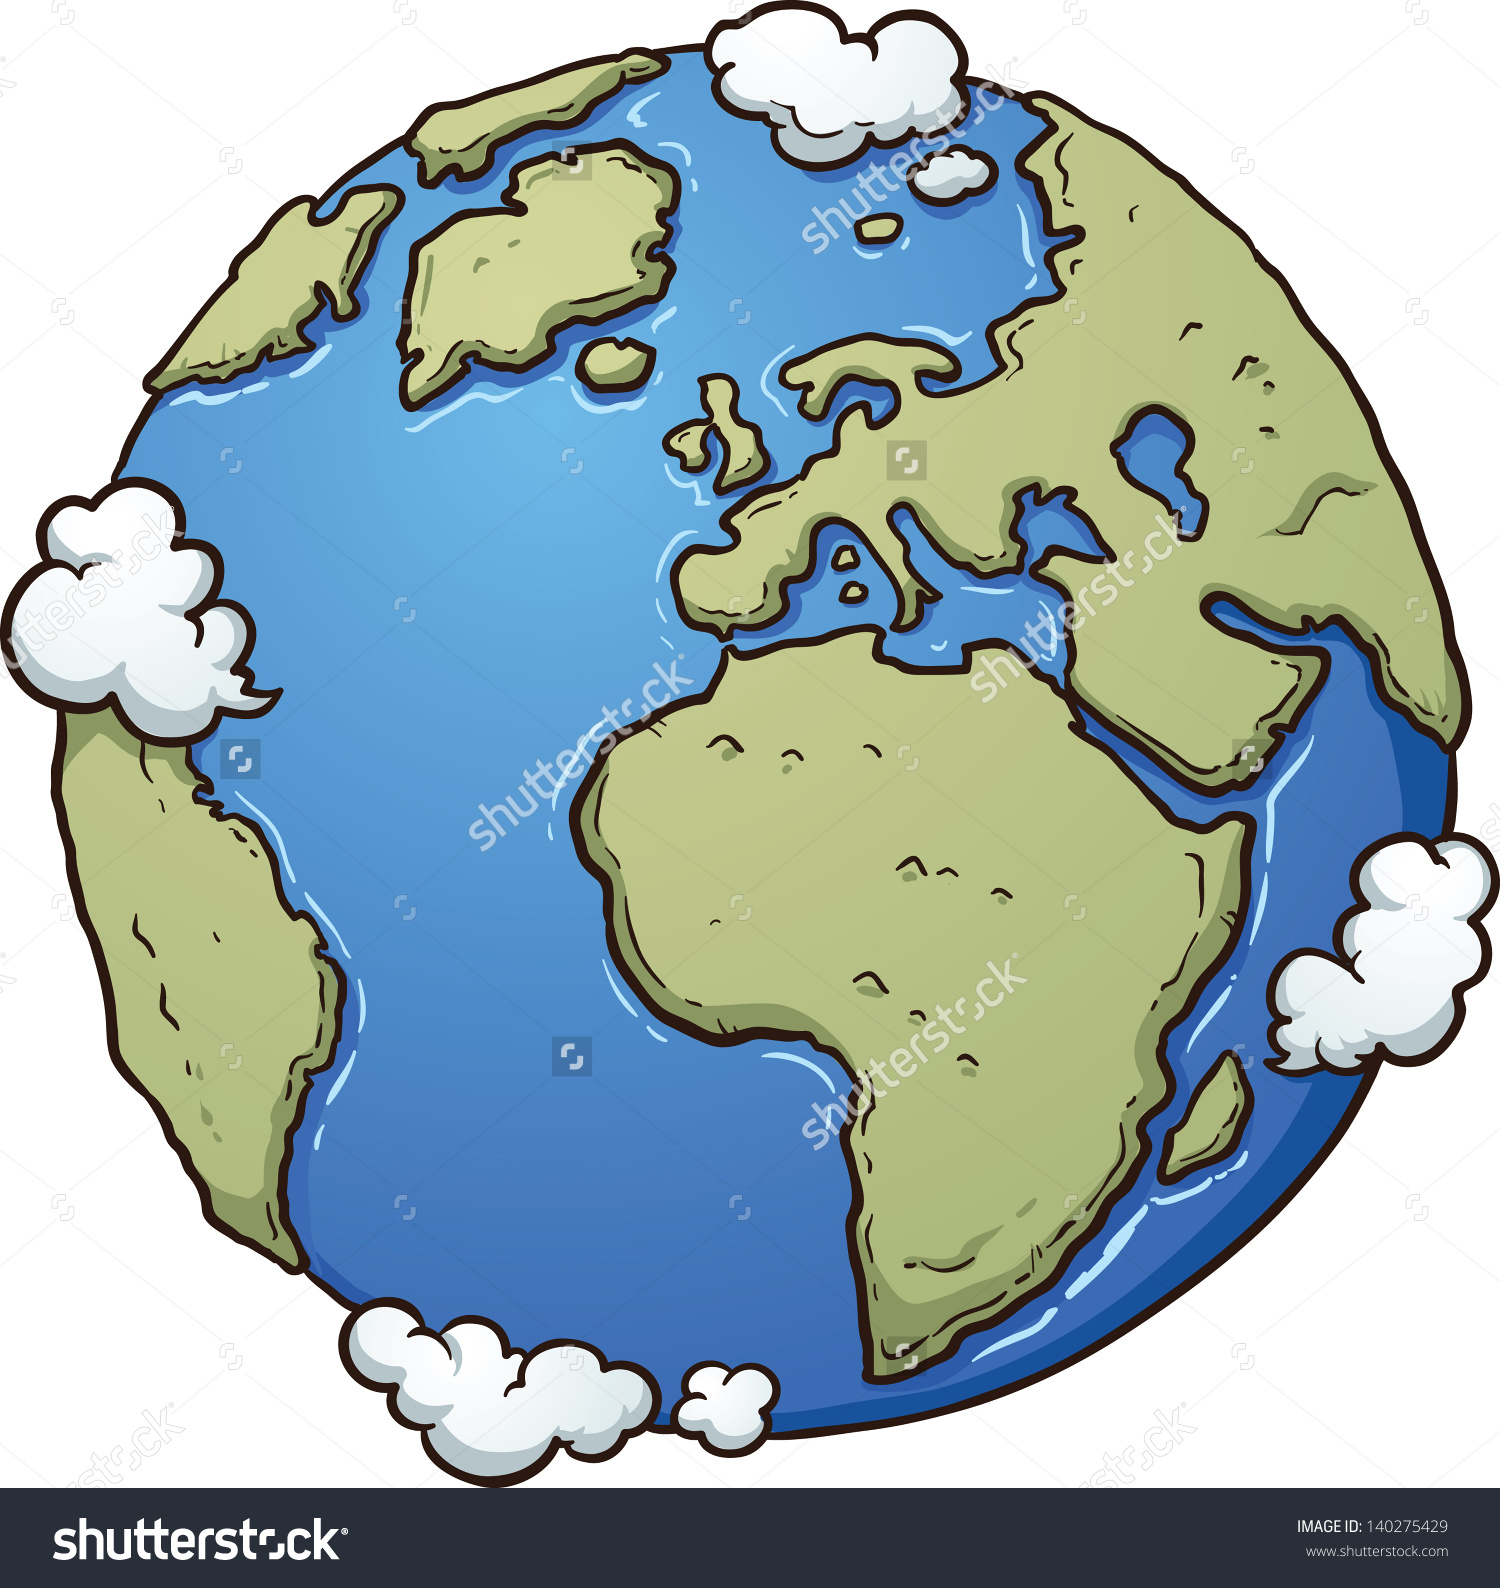 1500x1588 Simple Drawing Of Earth Stock Photos, Royalty Free Images Vectors